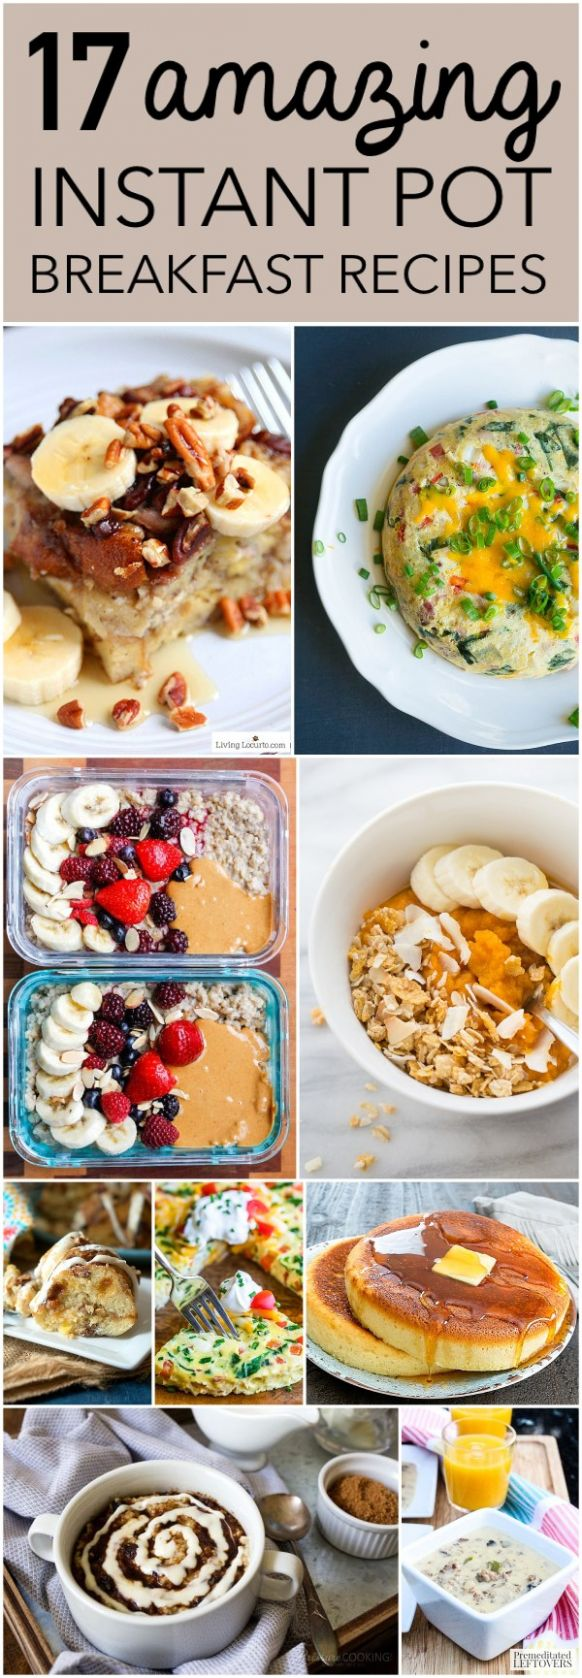 12 Awesome Breakfasts to Make in Your Instant Pot - Six Clever Sisters - Breakfast Recipes Healthy Easy